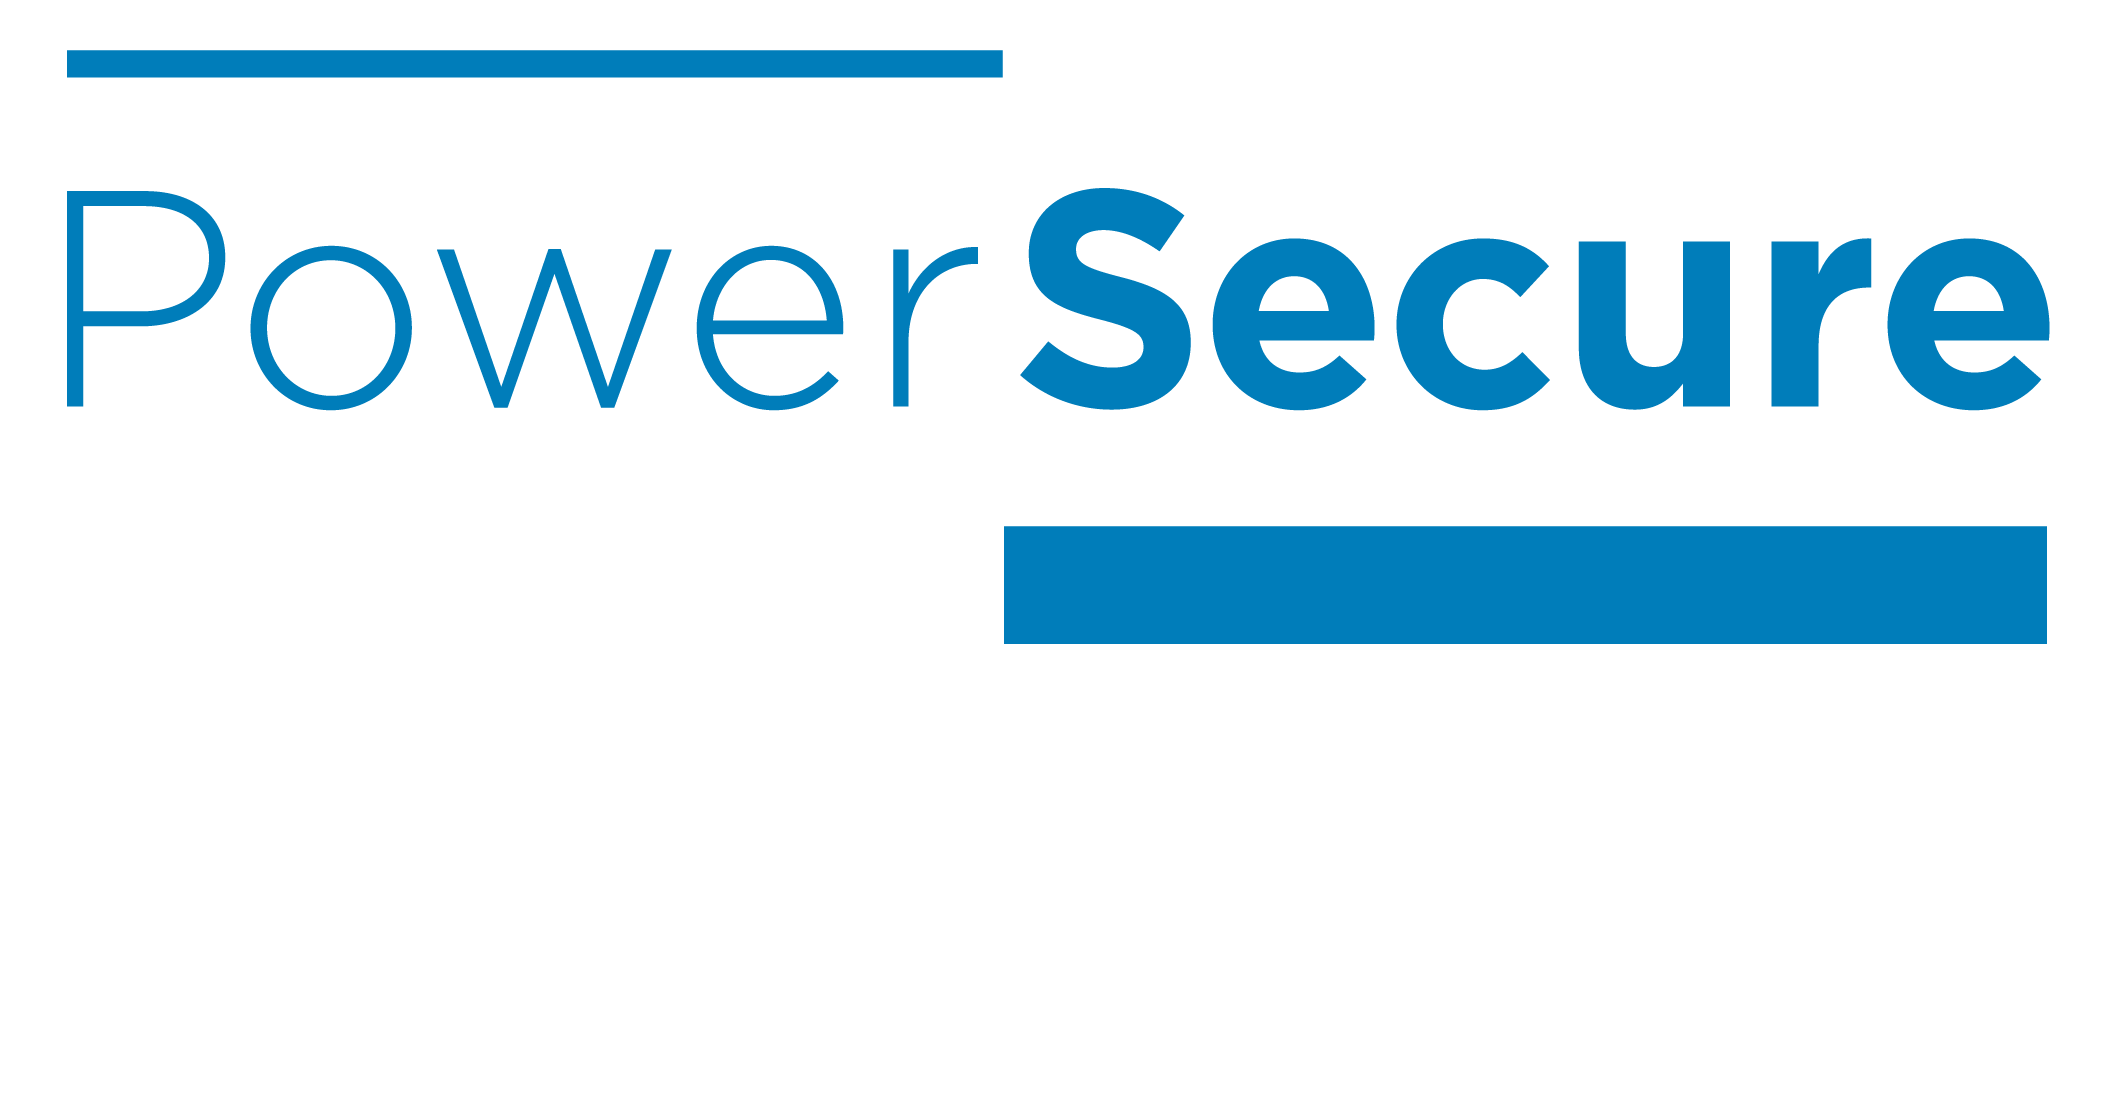 PowerSecure.png